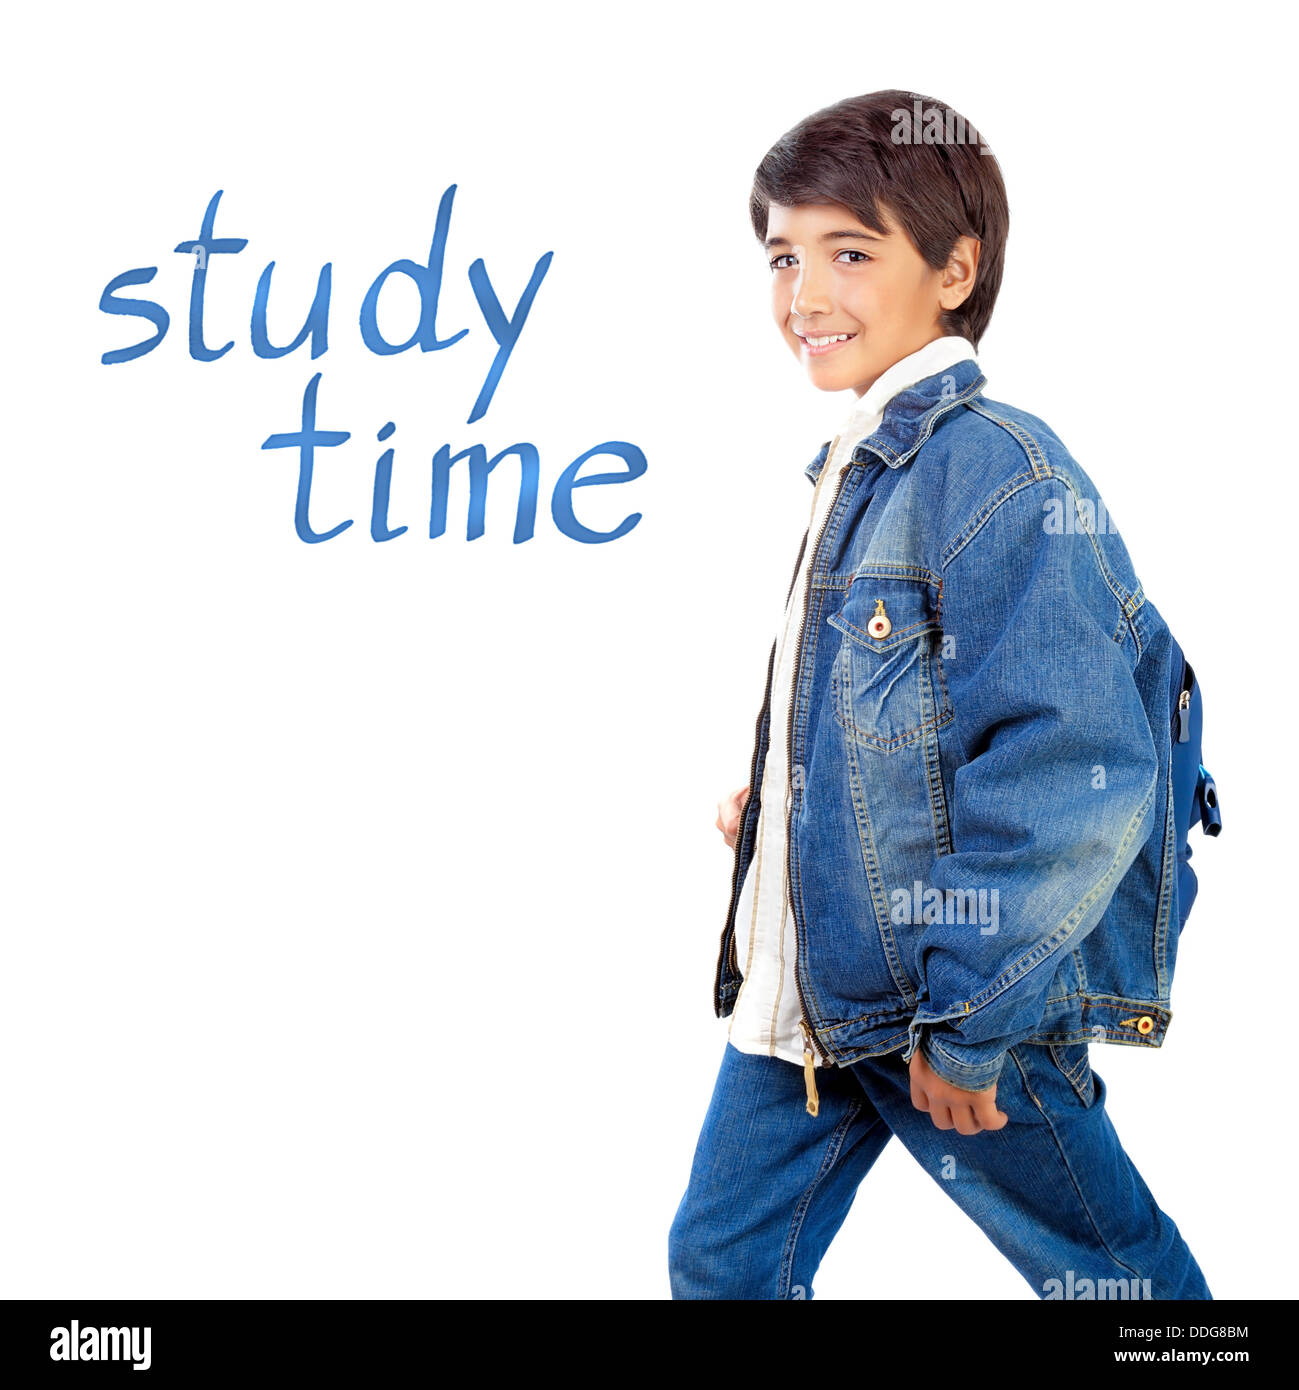 Arab Teen Boy Cut Out Stock Images  Pictures - Alamy-3190